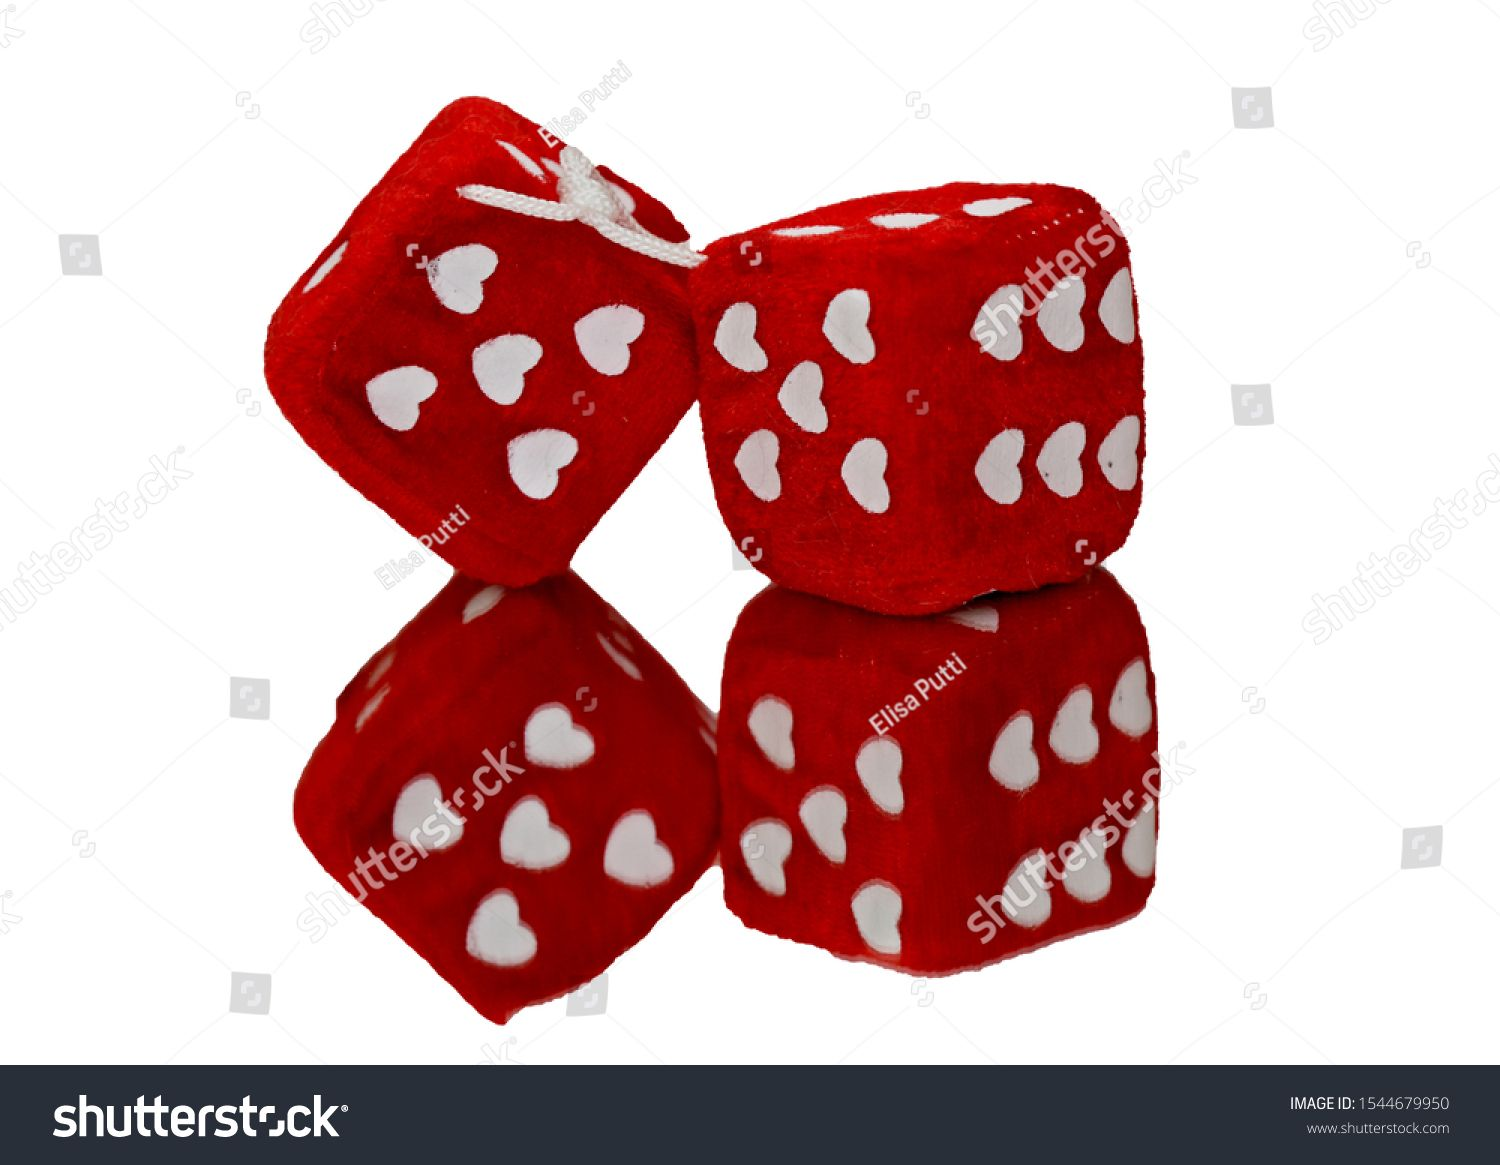 Two red dice with hearts as numbers #Sponsored , #sponsored, #dice#red#numbers#hearts